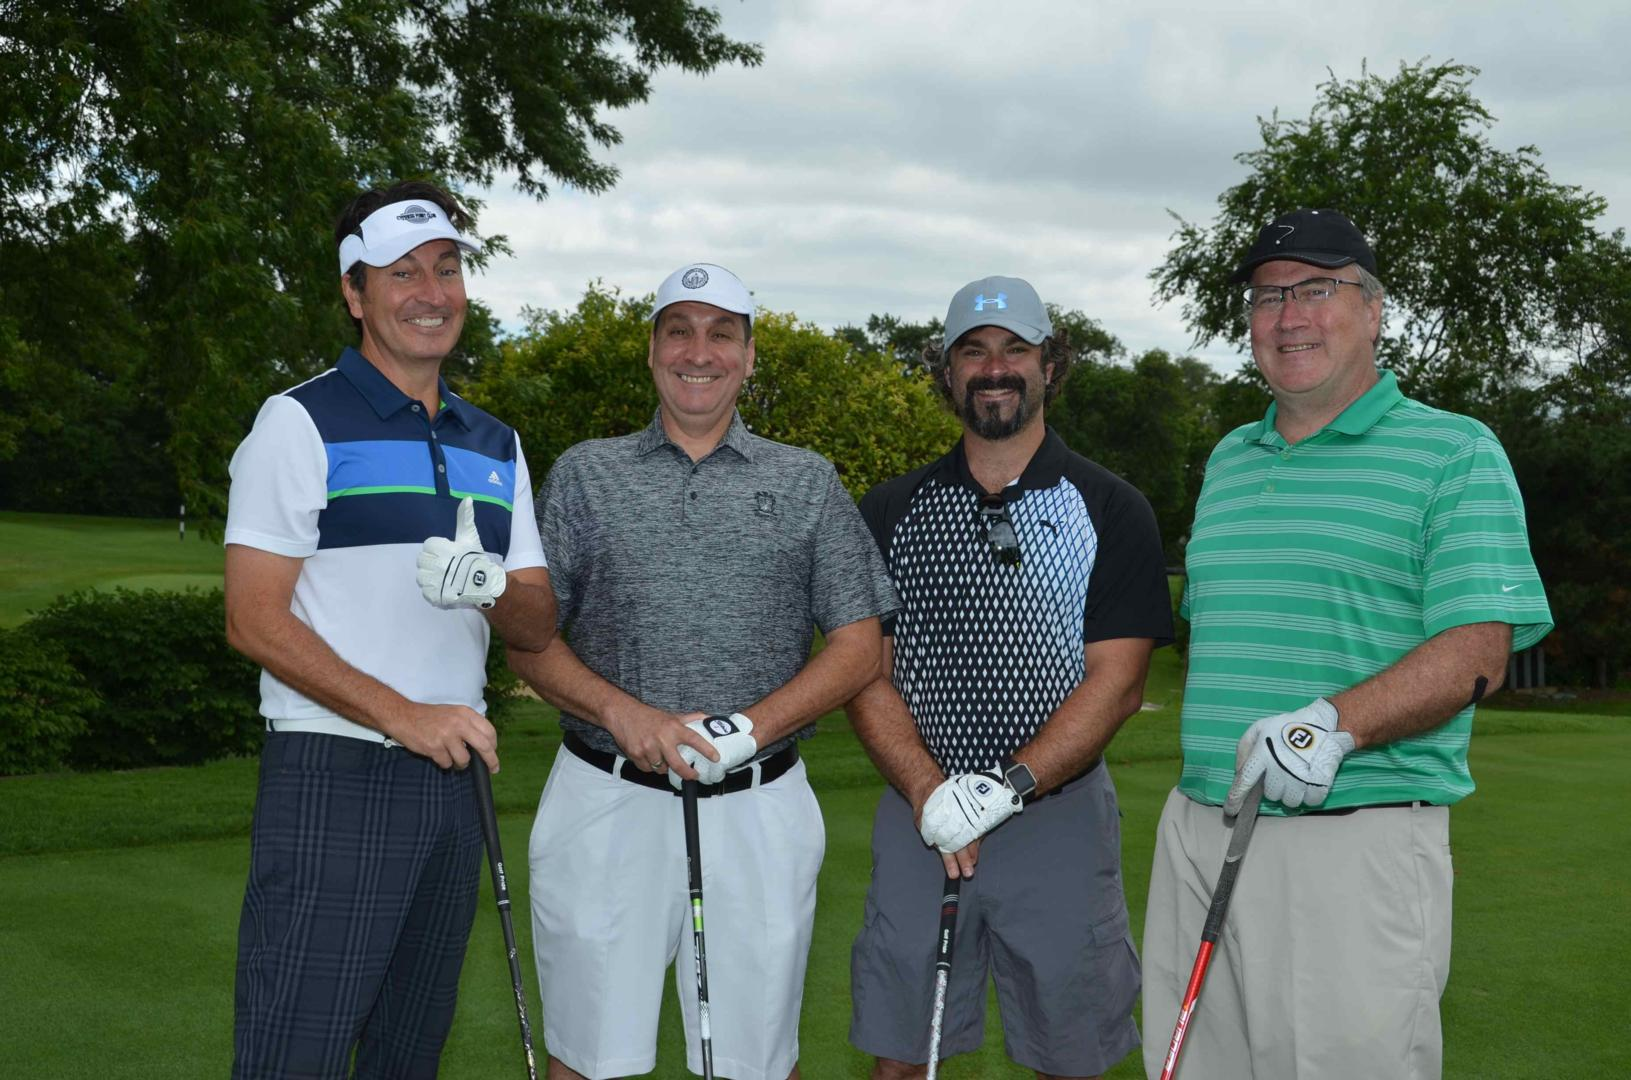 29th Annual Avenues/Gorman Golf and Tennis Classic